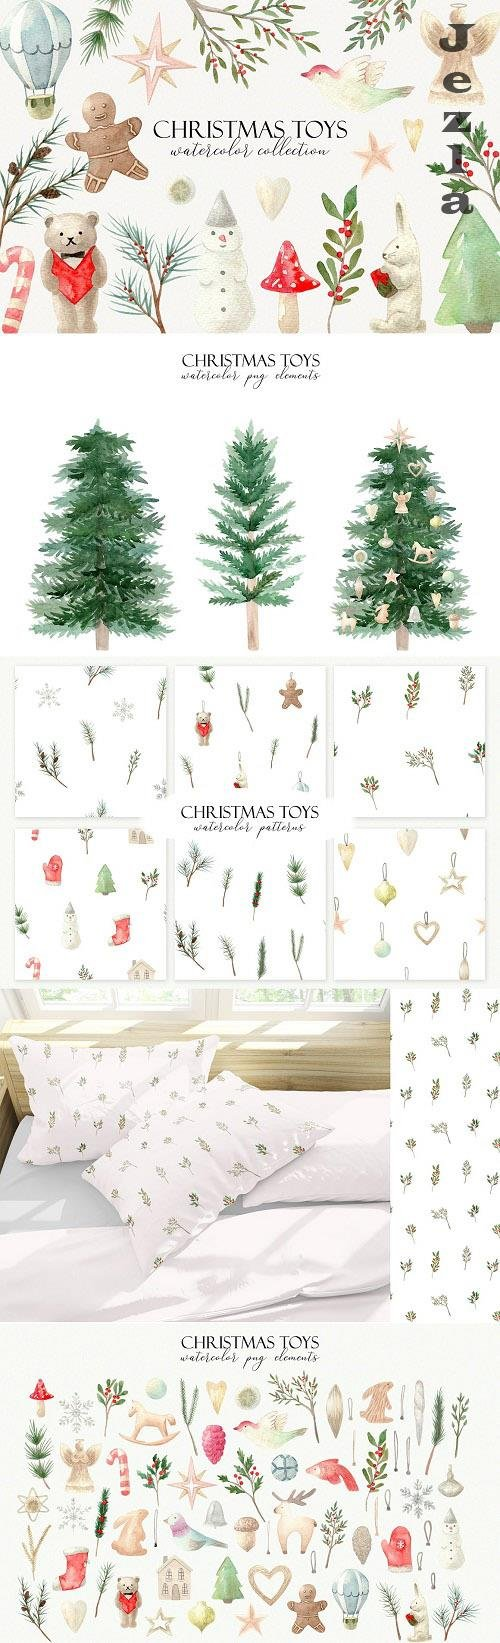 Watercolor Christmas Toys Collection - 6322386